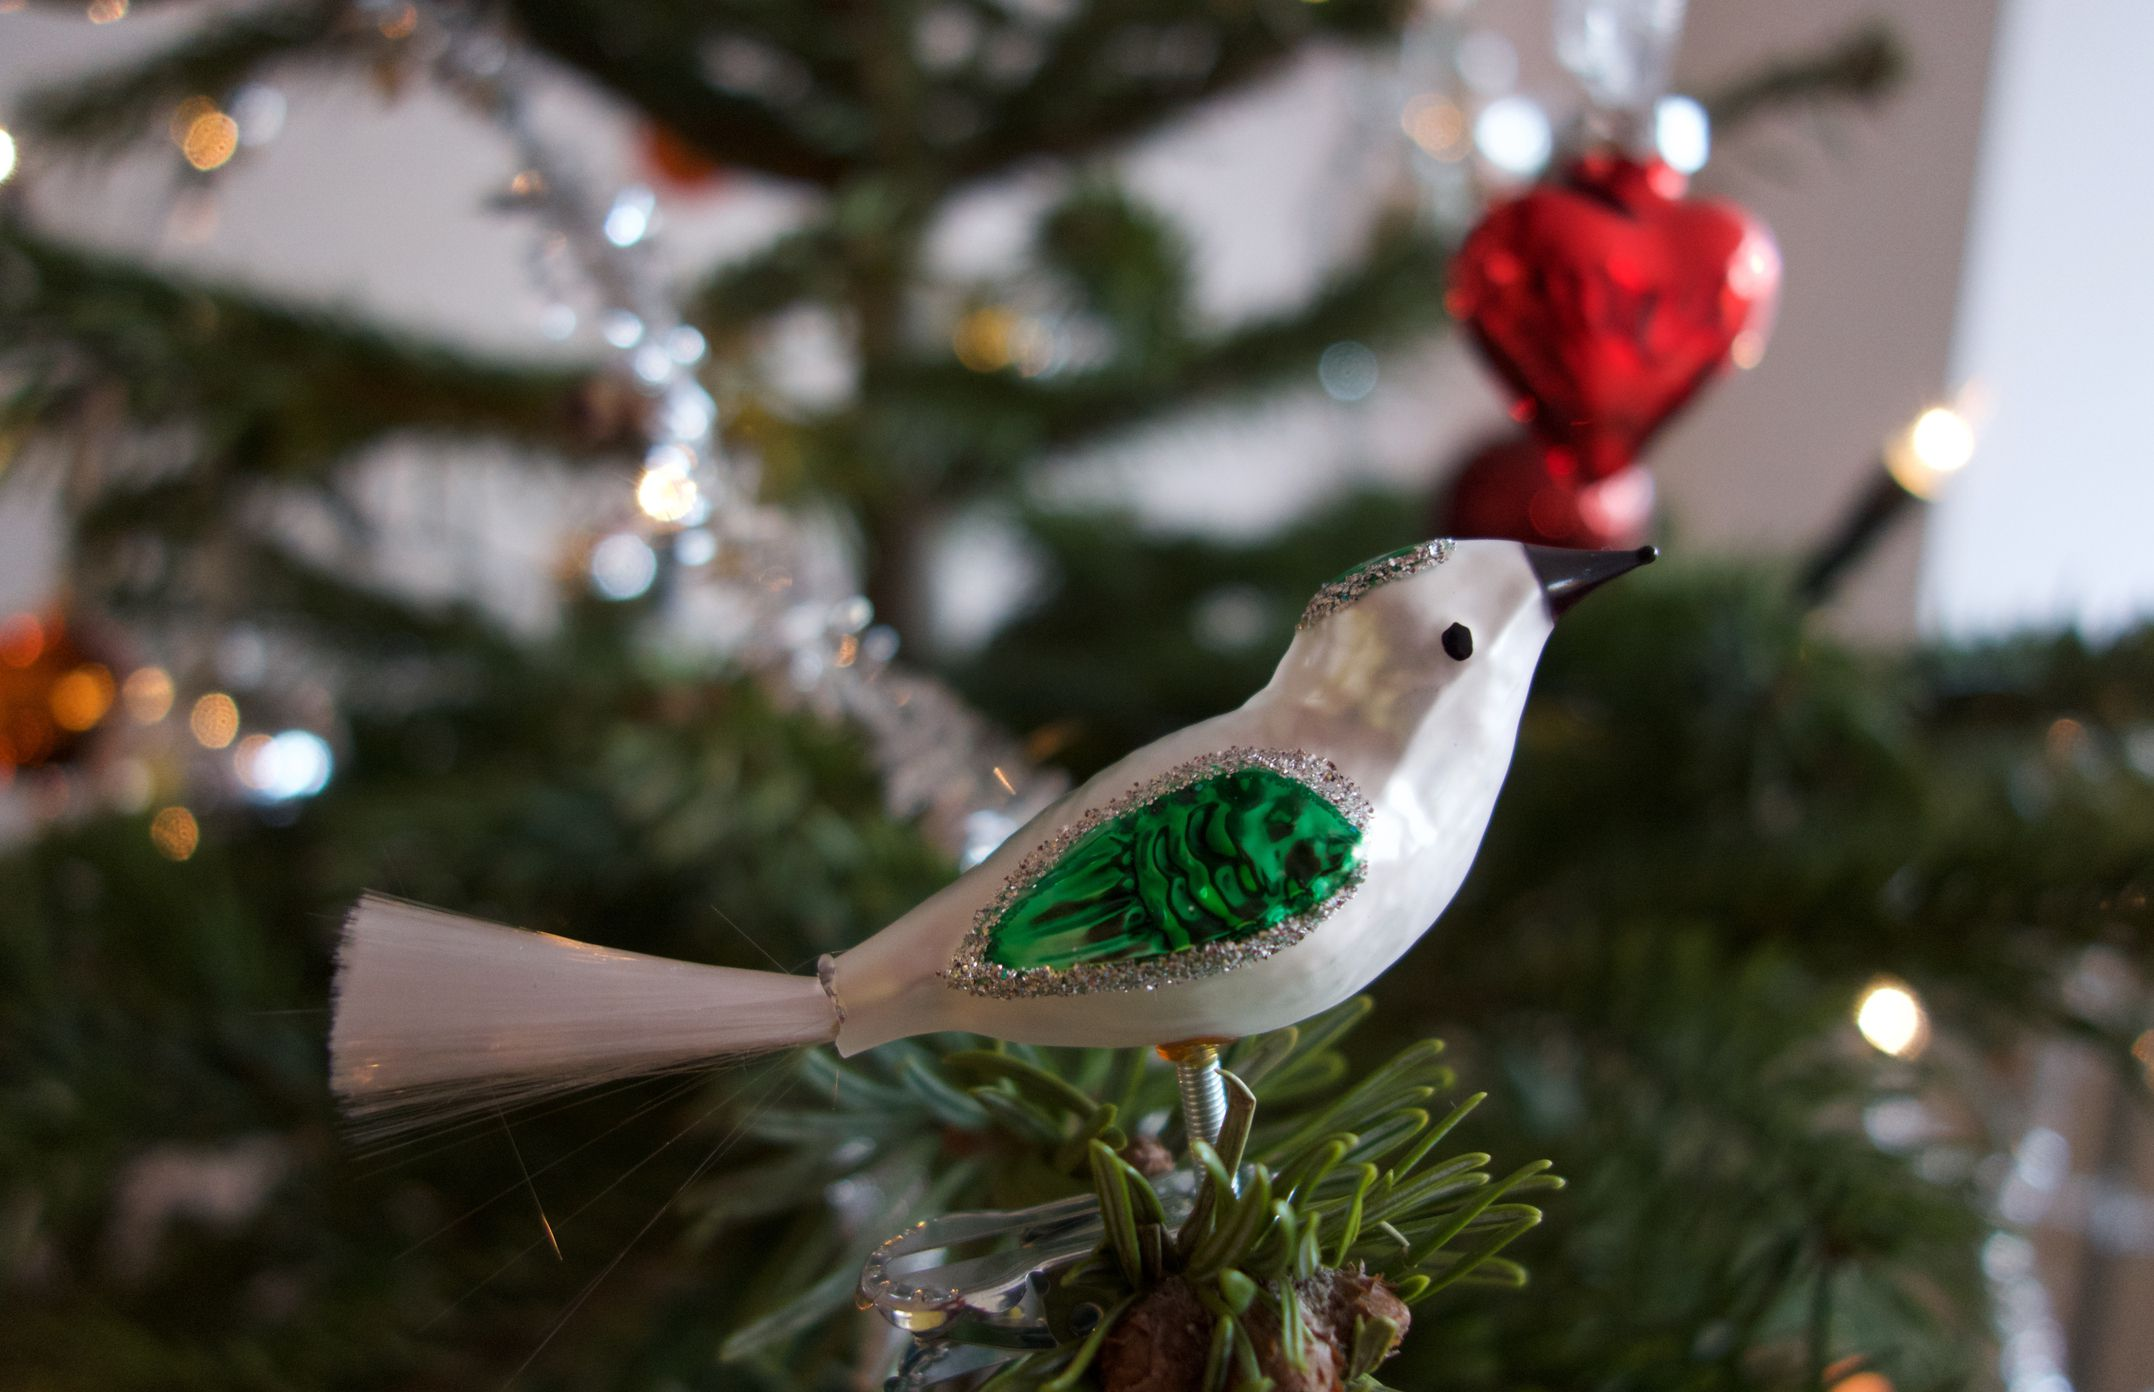 Eastern european tradition of upside down christmas trees the symbols behind the twelve brides tree ornaments christmas biocorpaavc